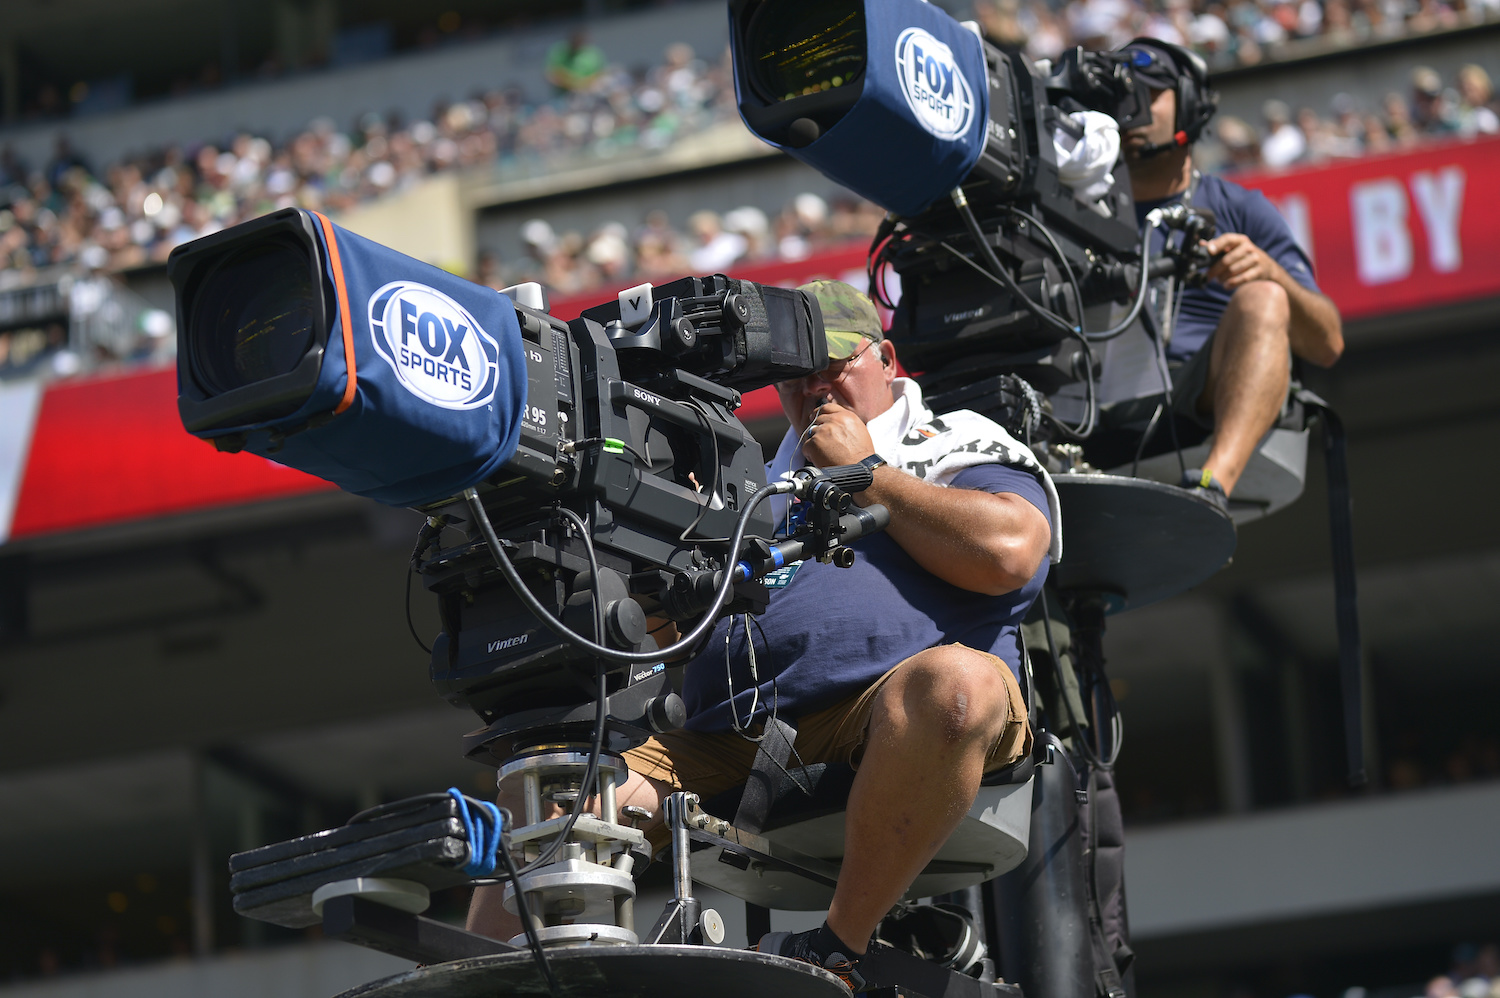 In the midst of sinking rankings and NFL boycott talk, Fox could double its yearly investment in NFL broadcast rights to $2 billion or more.